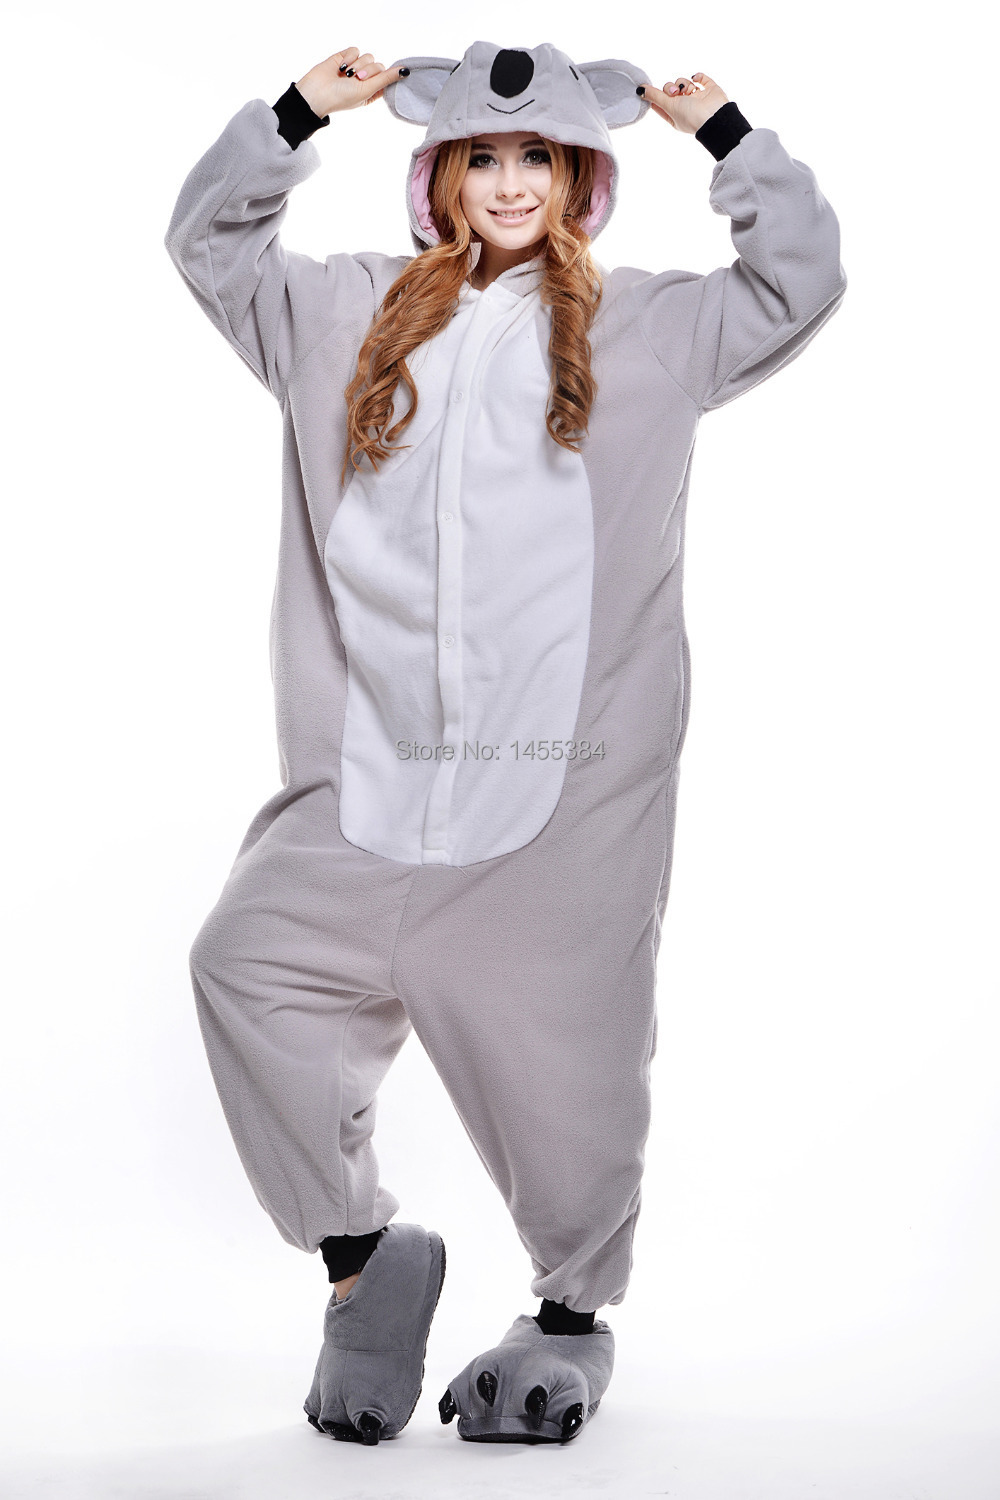 Halloween Costumes for Women Animal Onesie Adults Sleeping Wear Anime Grey Koala Pajamas Cosplay Dress Free Shipping-in Anime Costumes from Novelty ...  sc 1 st  AliExpress.com & Halloween Costumes for Women Animal Onesie Adults Sleeping Wear ...